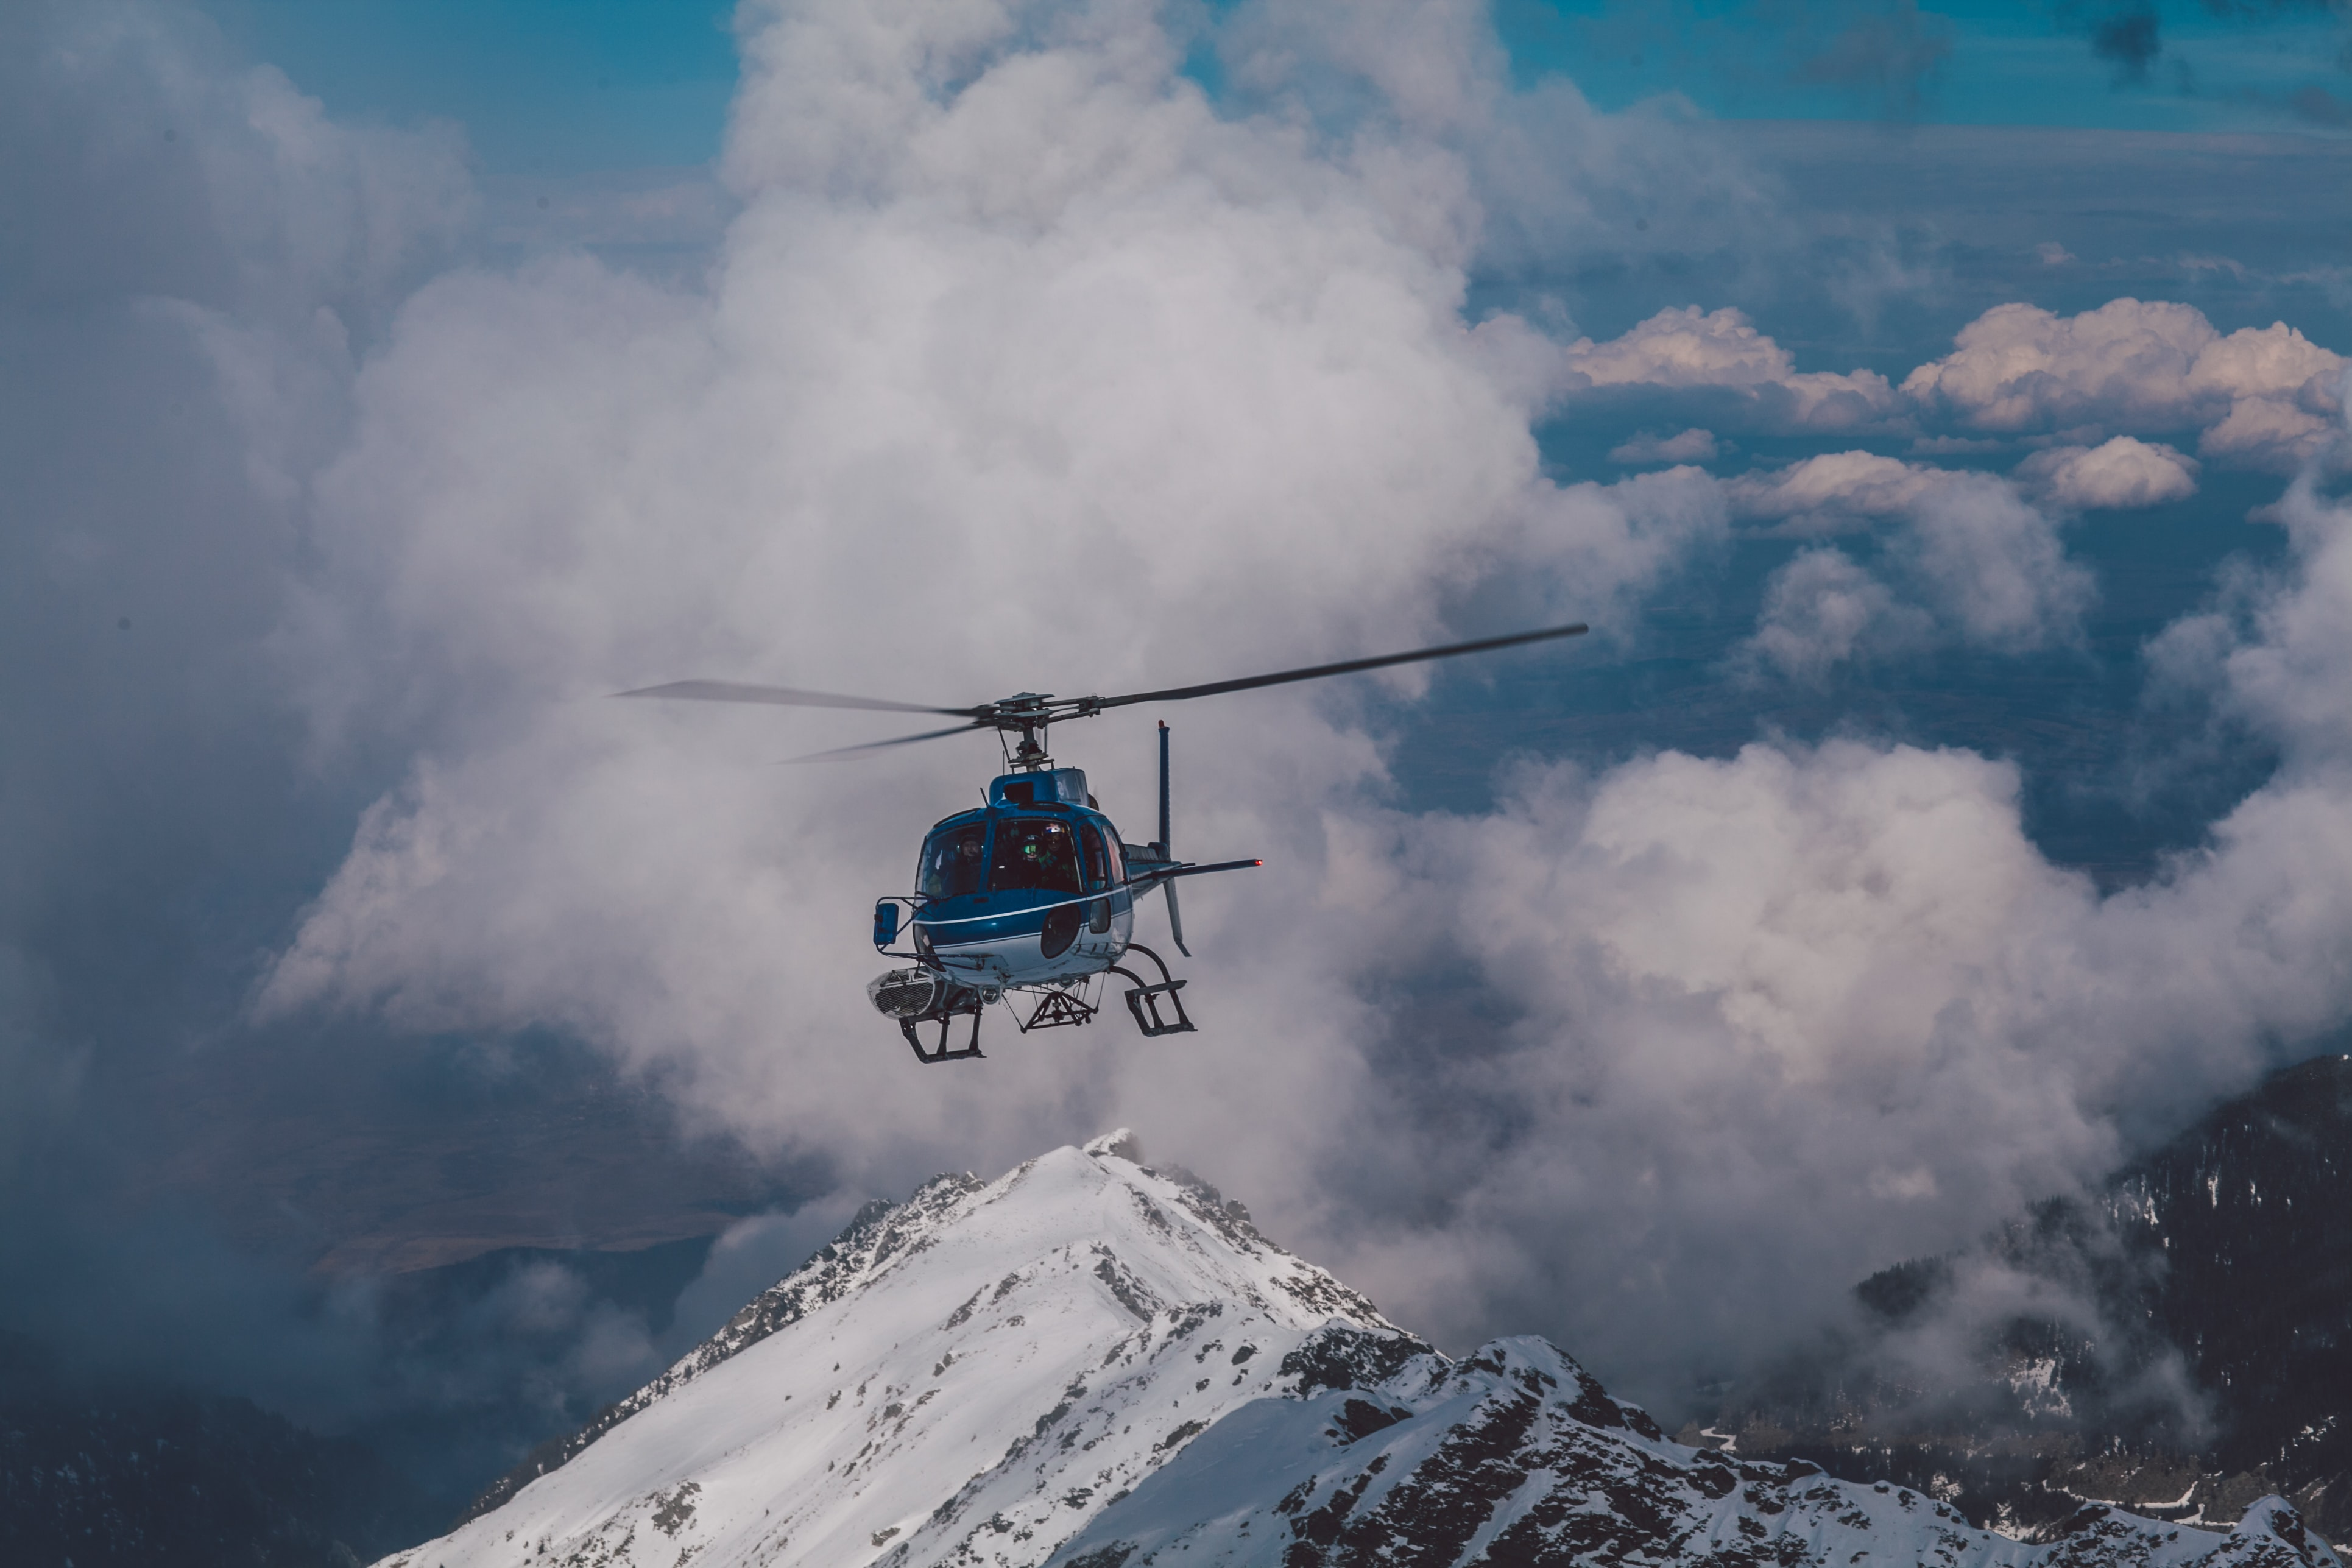 A blue helicopter is flying away from clouds and a snowcapped mountain